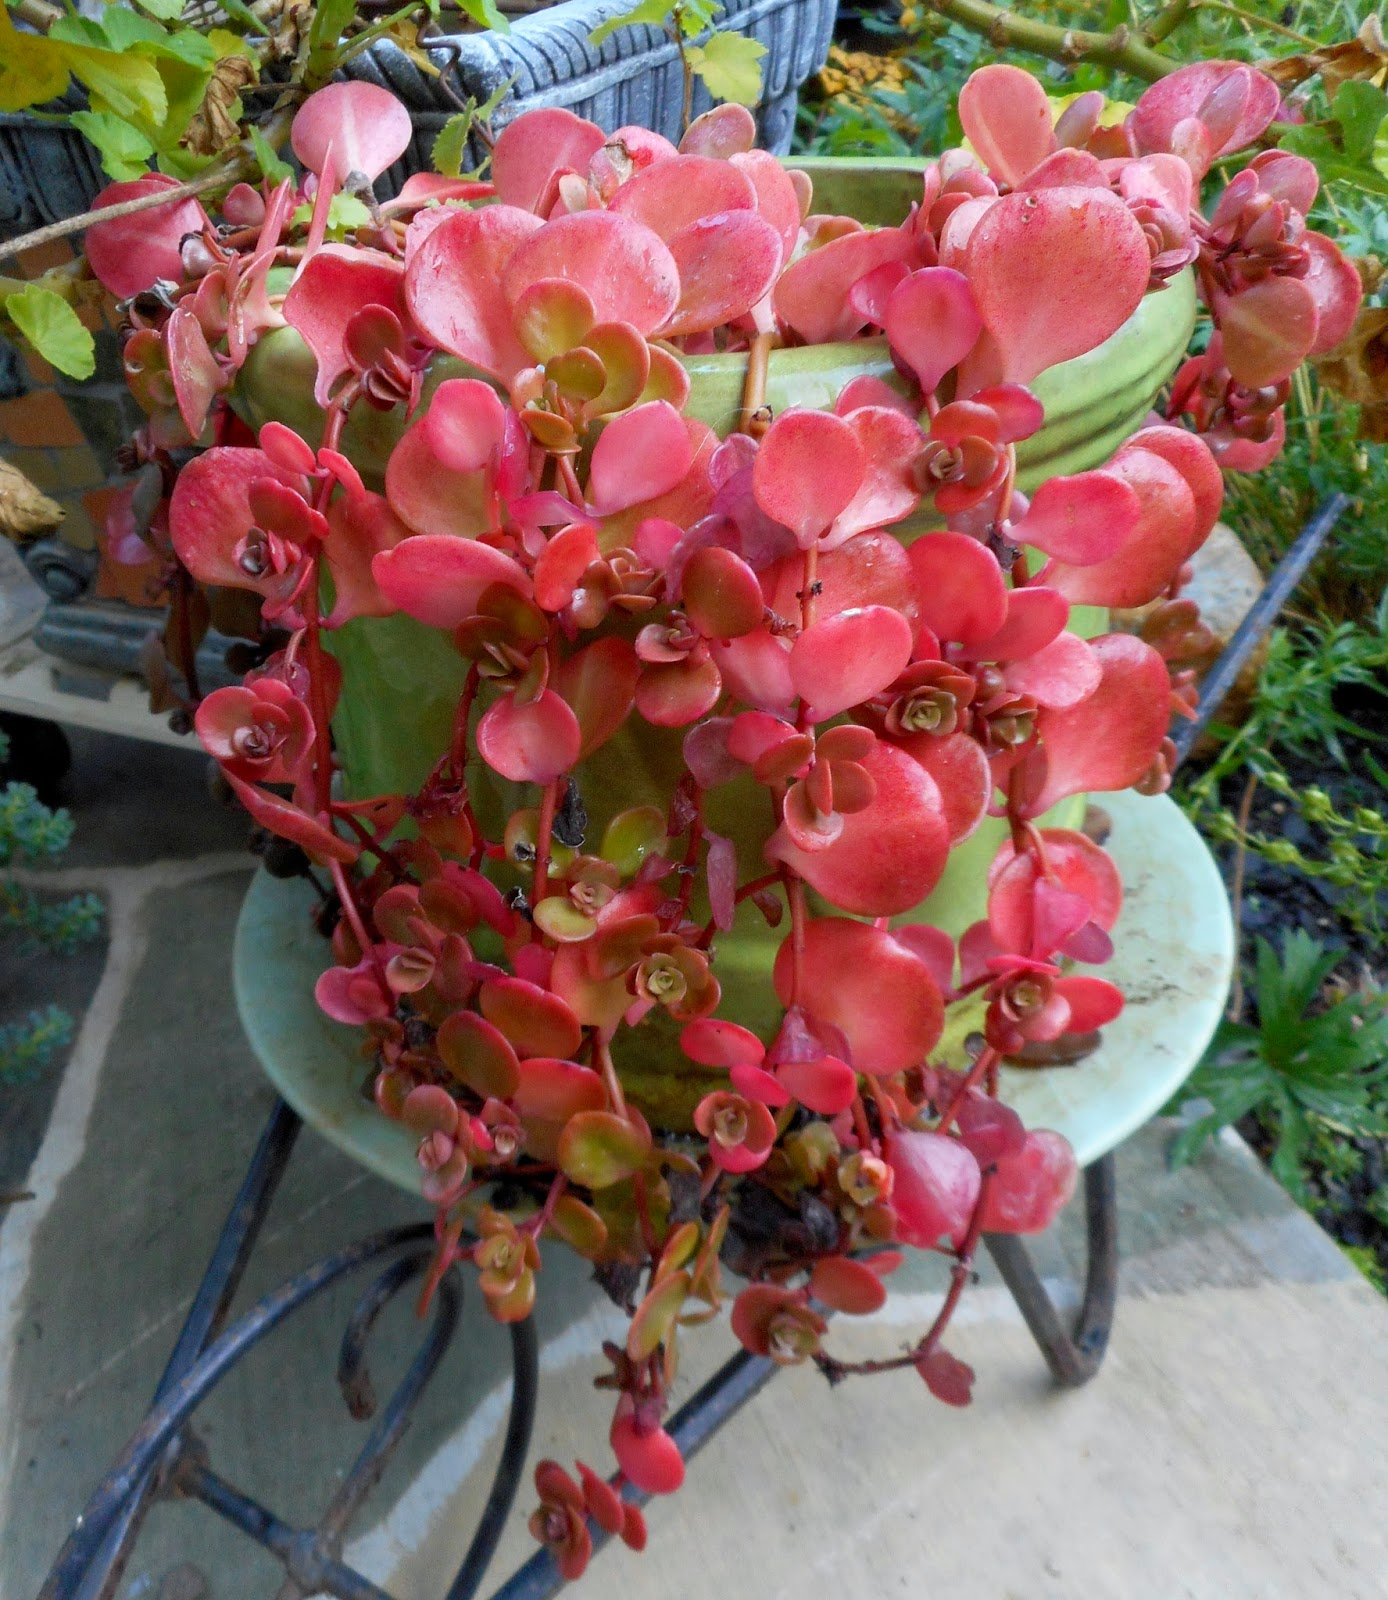 Gardening With Grace: It's Beginning To Look A Lot Like Fall